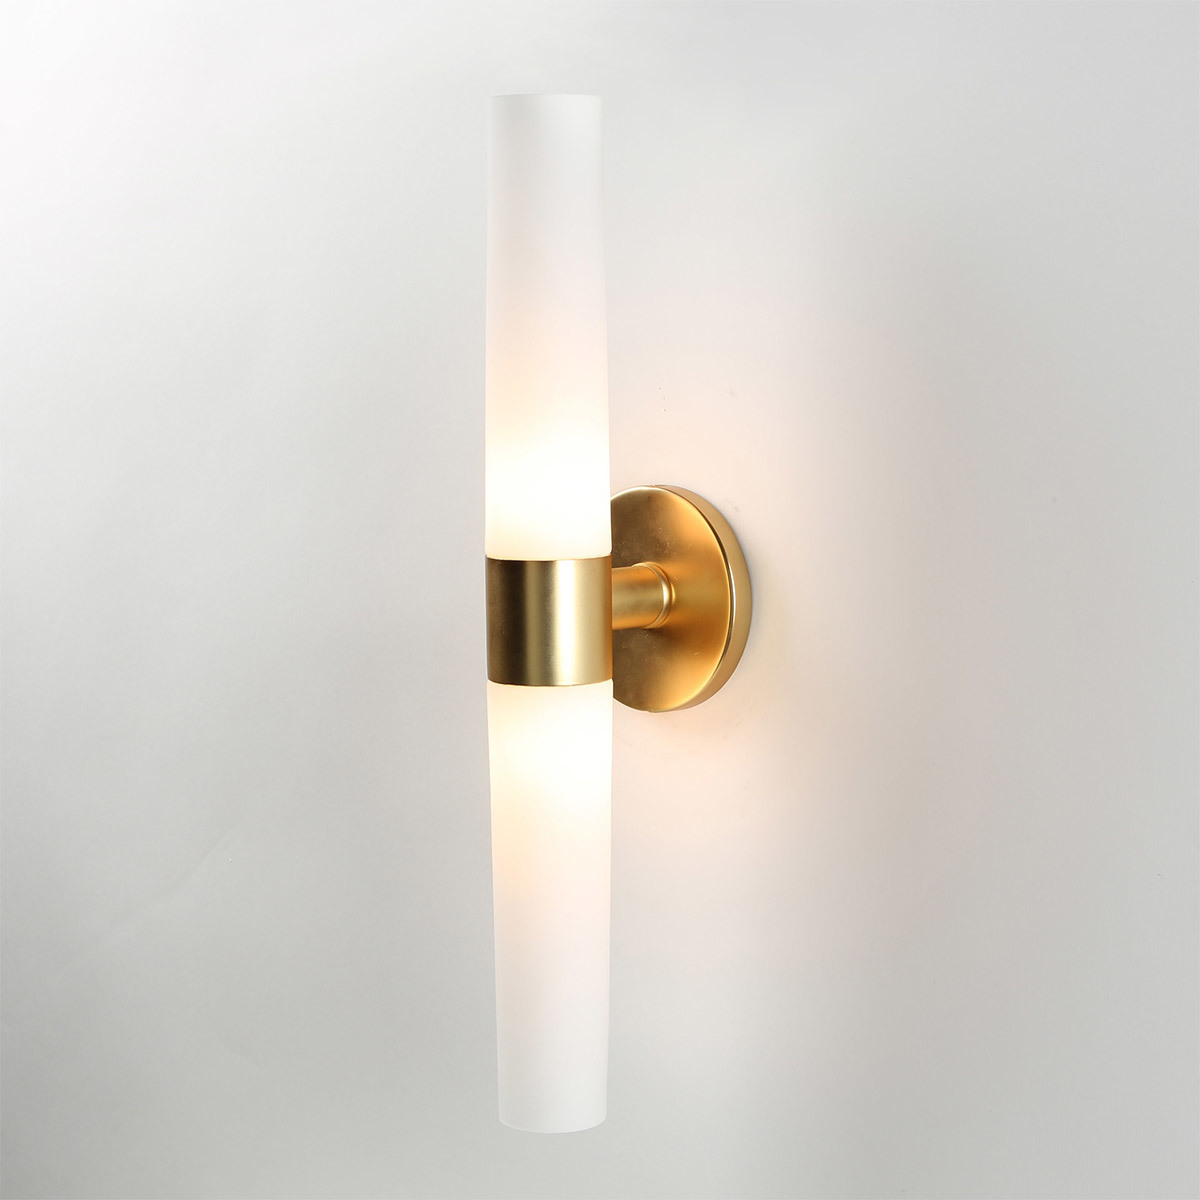 Opal-frosted wall sconce with brass finish photo